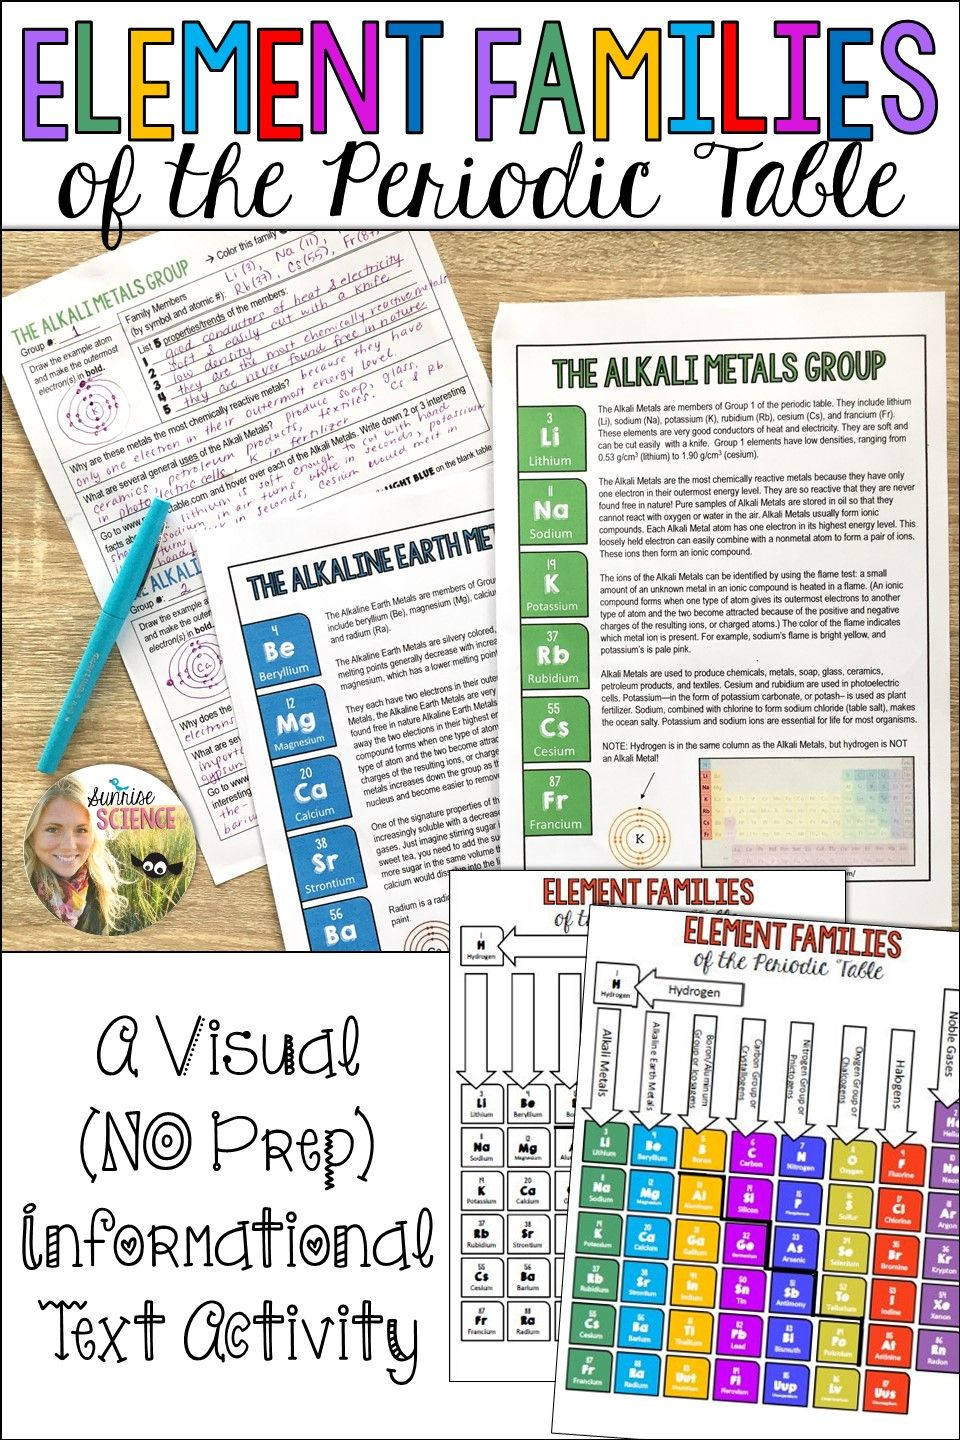 Element families of the periodic table informational text activity element families of the periodic table informational text activity urtaz Images